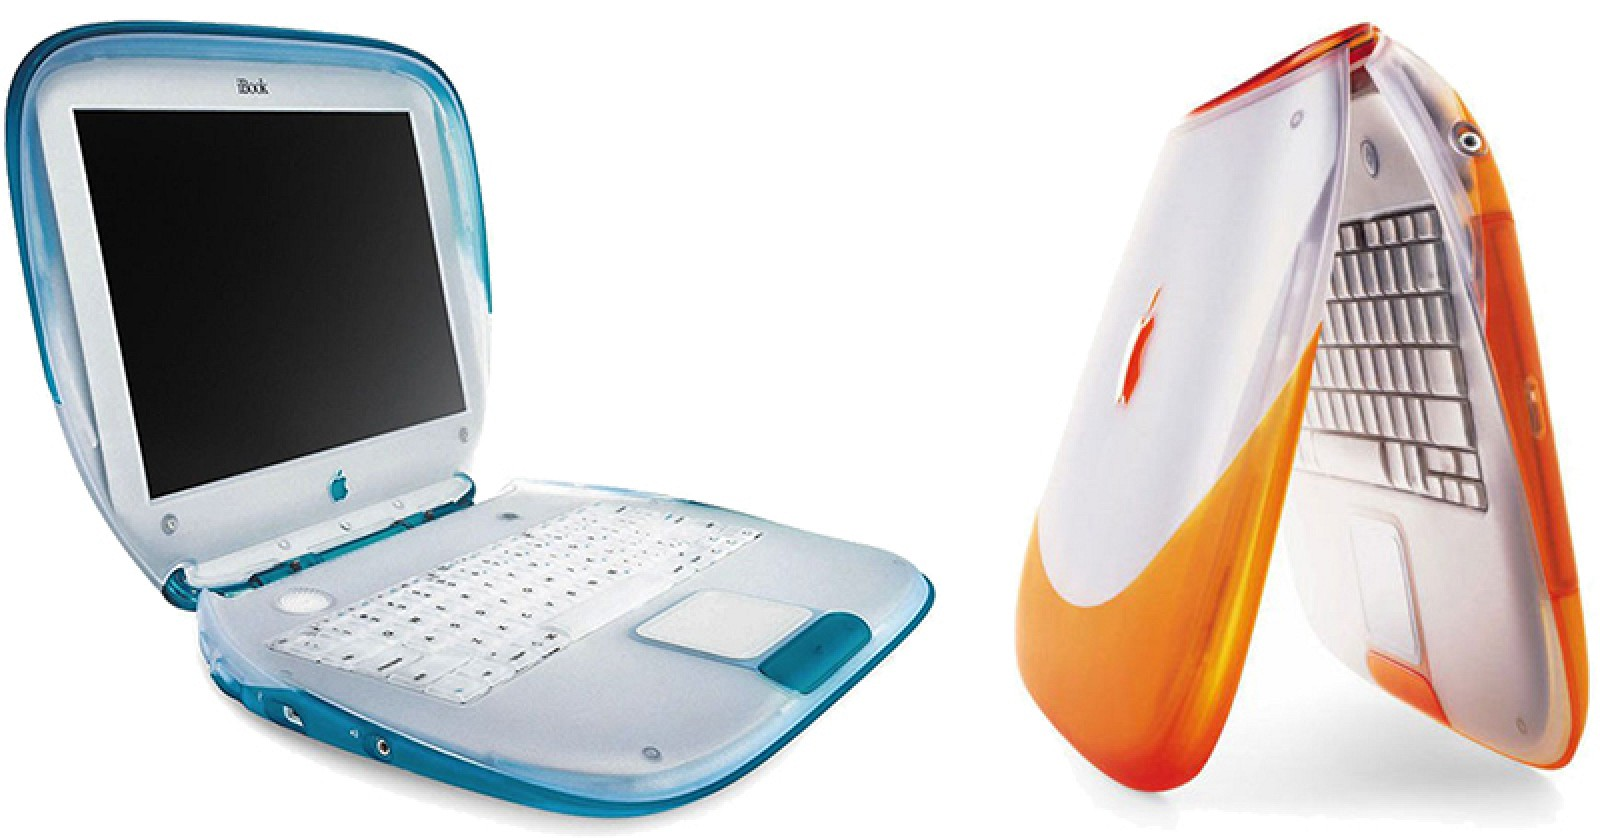 IBook Turns 20: Watch Steve Jobs Unveil the World's First Notebook with Wireless Internet